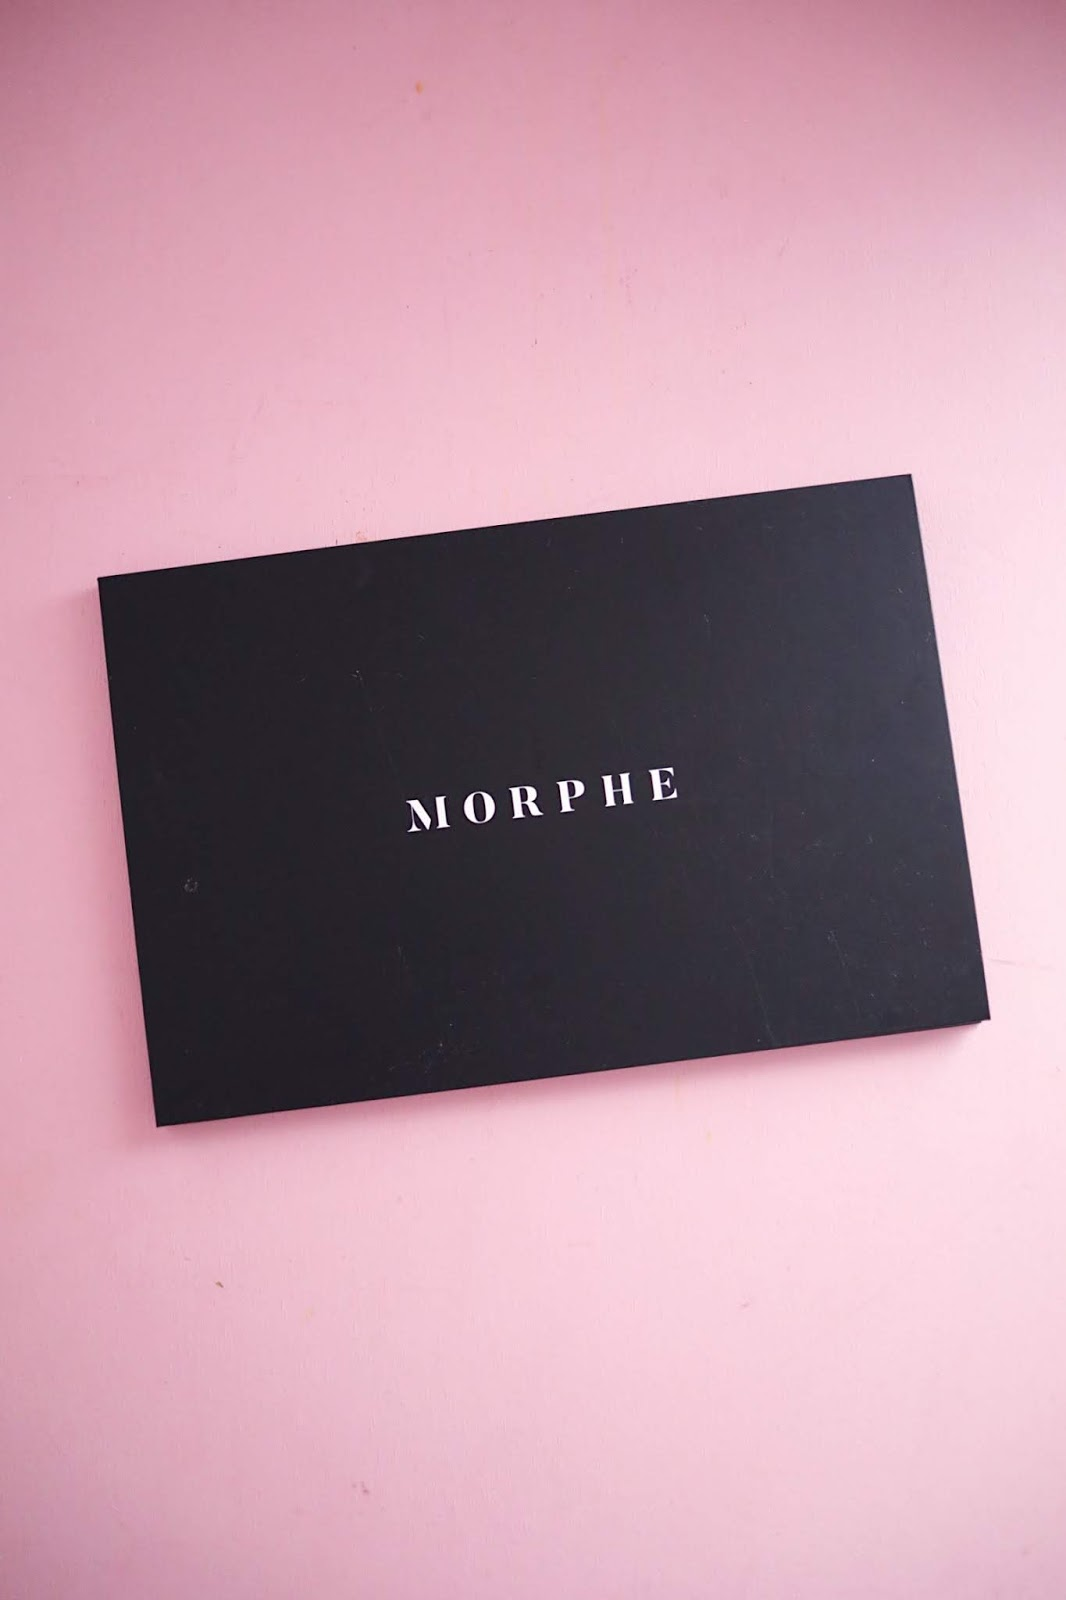 MORPHE , 39S PALETTE , HALLOWEN , WITCH MAKEUP, PURPLE MAKEUP , GLITTER MAKEUP , COLOURPOP MAKEUP, rose mademoiselle , rosemademoiselle, blog beauté , paris